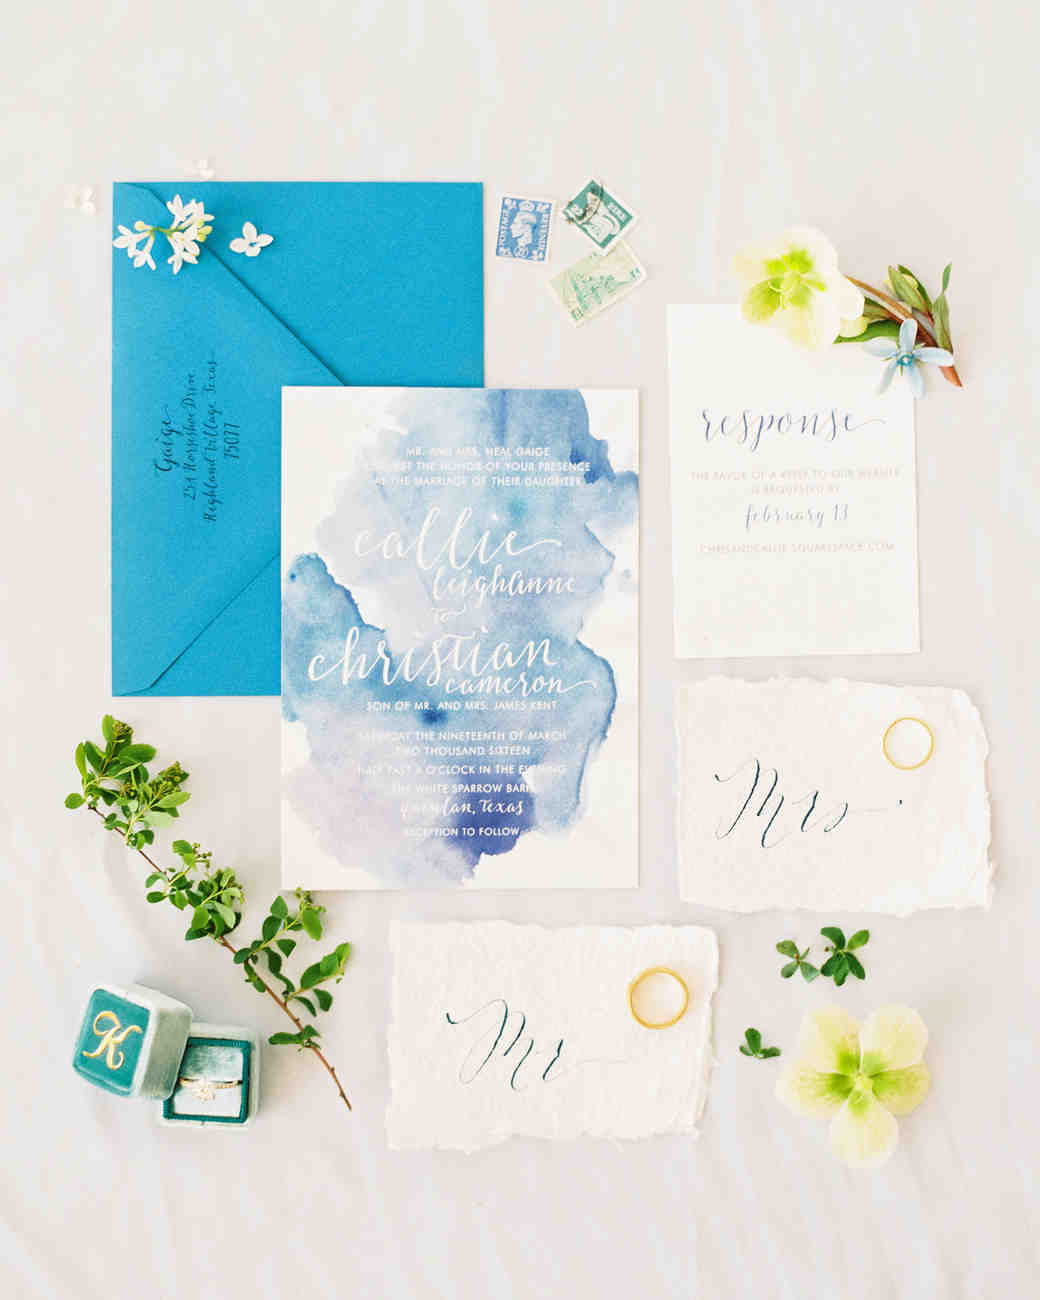 The loveliest watercolor wedding invitations martha stewart weddings blue watercolor wedding invitation junglespirit Image collections